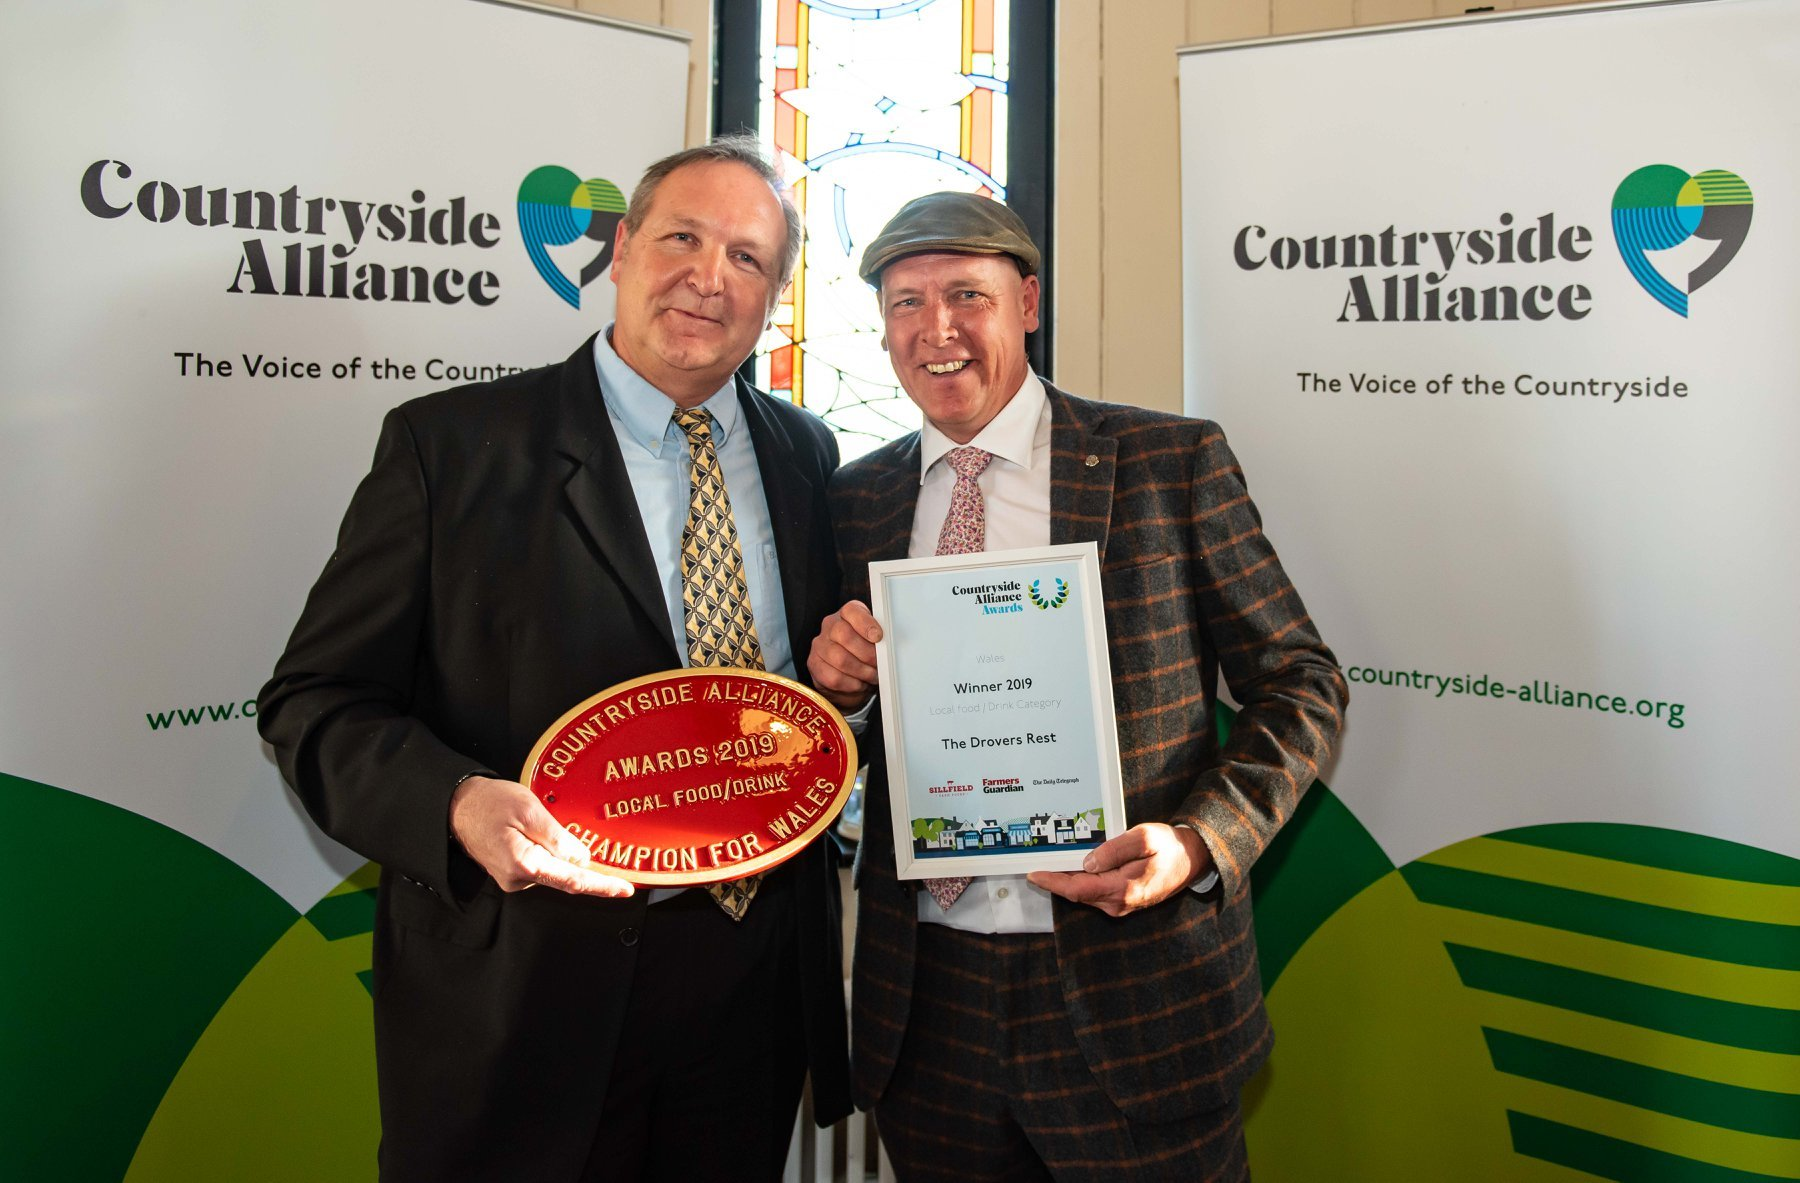 Peter James (left) of The Drovers Rest, Llanwrtyd Wells, collects his award from Gareth Wyn Jones for Best Local Food and Drink. Picture: Peter Anderson, Anderson Photography